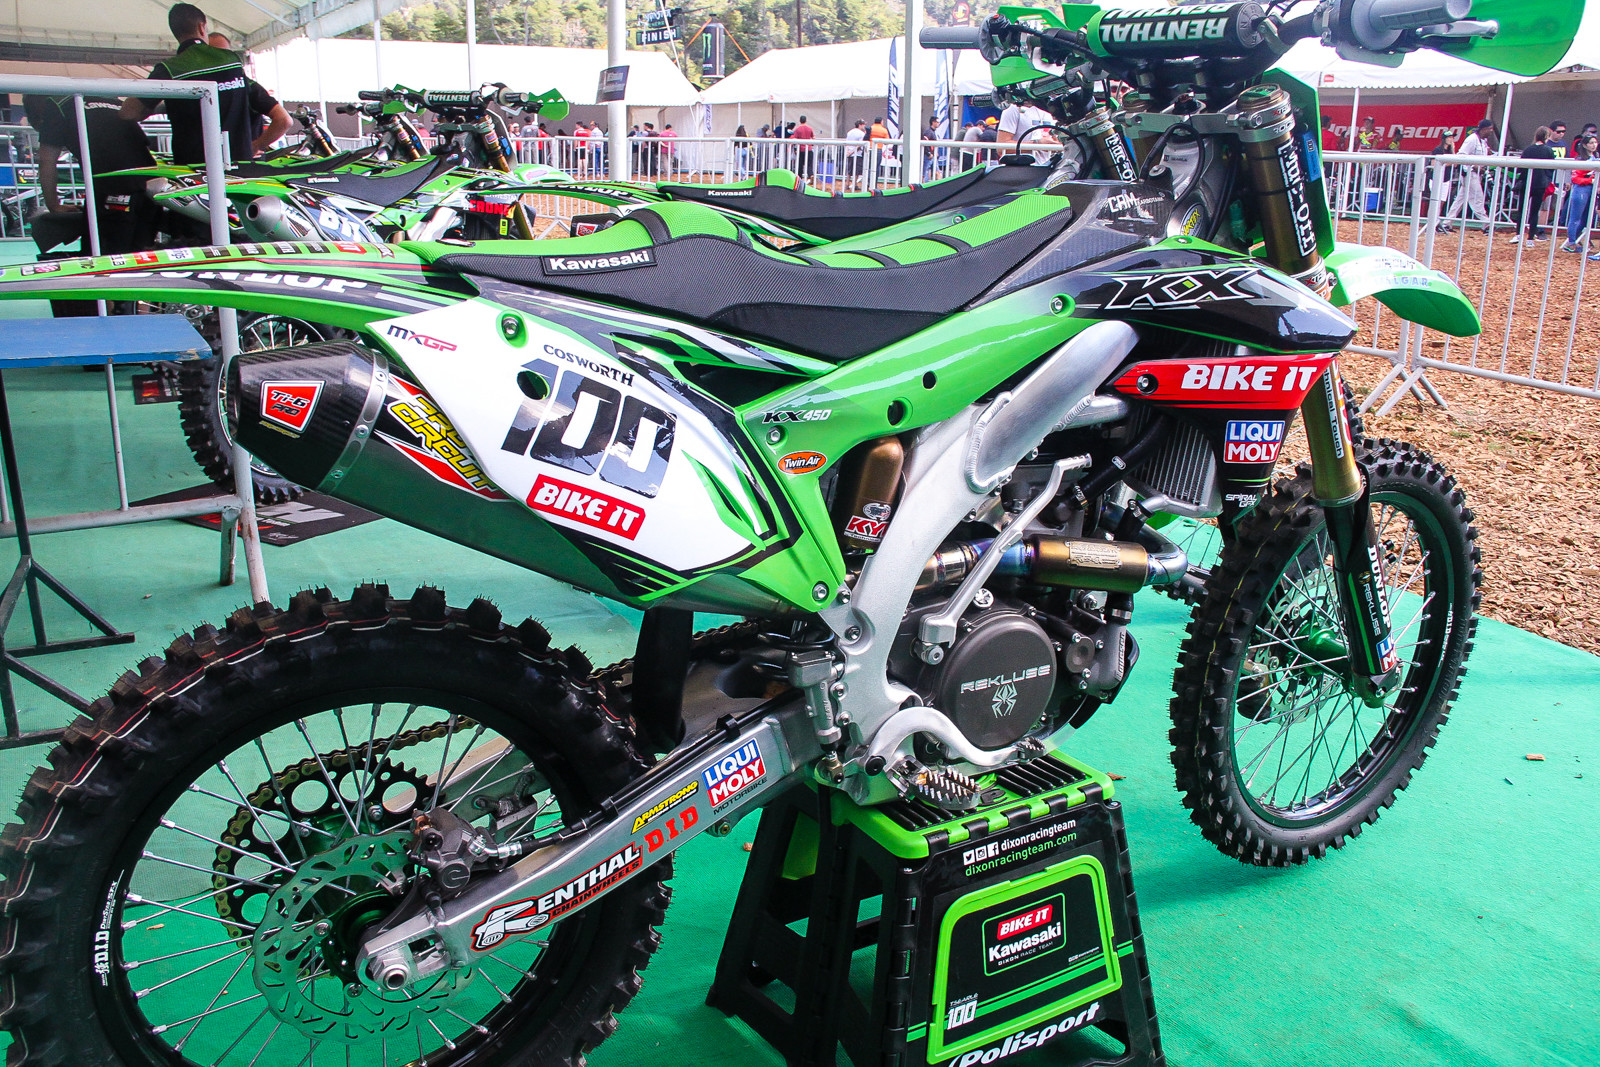 Holy seat bump....seat mountain? Tommy Searle's Bike-It DRT KX450F must put out some serious horsepower. Speaking of the team itself, gone is the Monster sponsorship as long-time sponsor Bike-It steps up to title level this year. The team has also jumped around on tires a bit the past seasons seems to have settled on Dunlop for 2018.